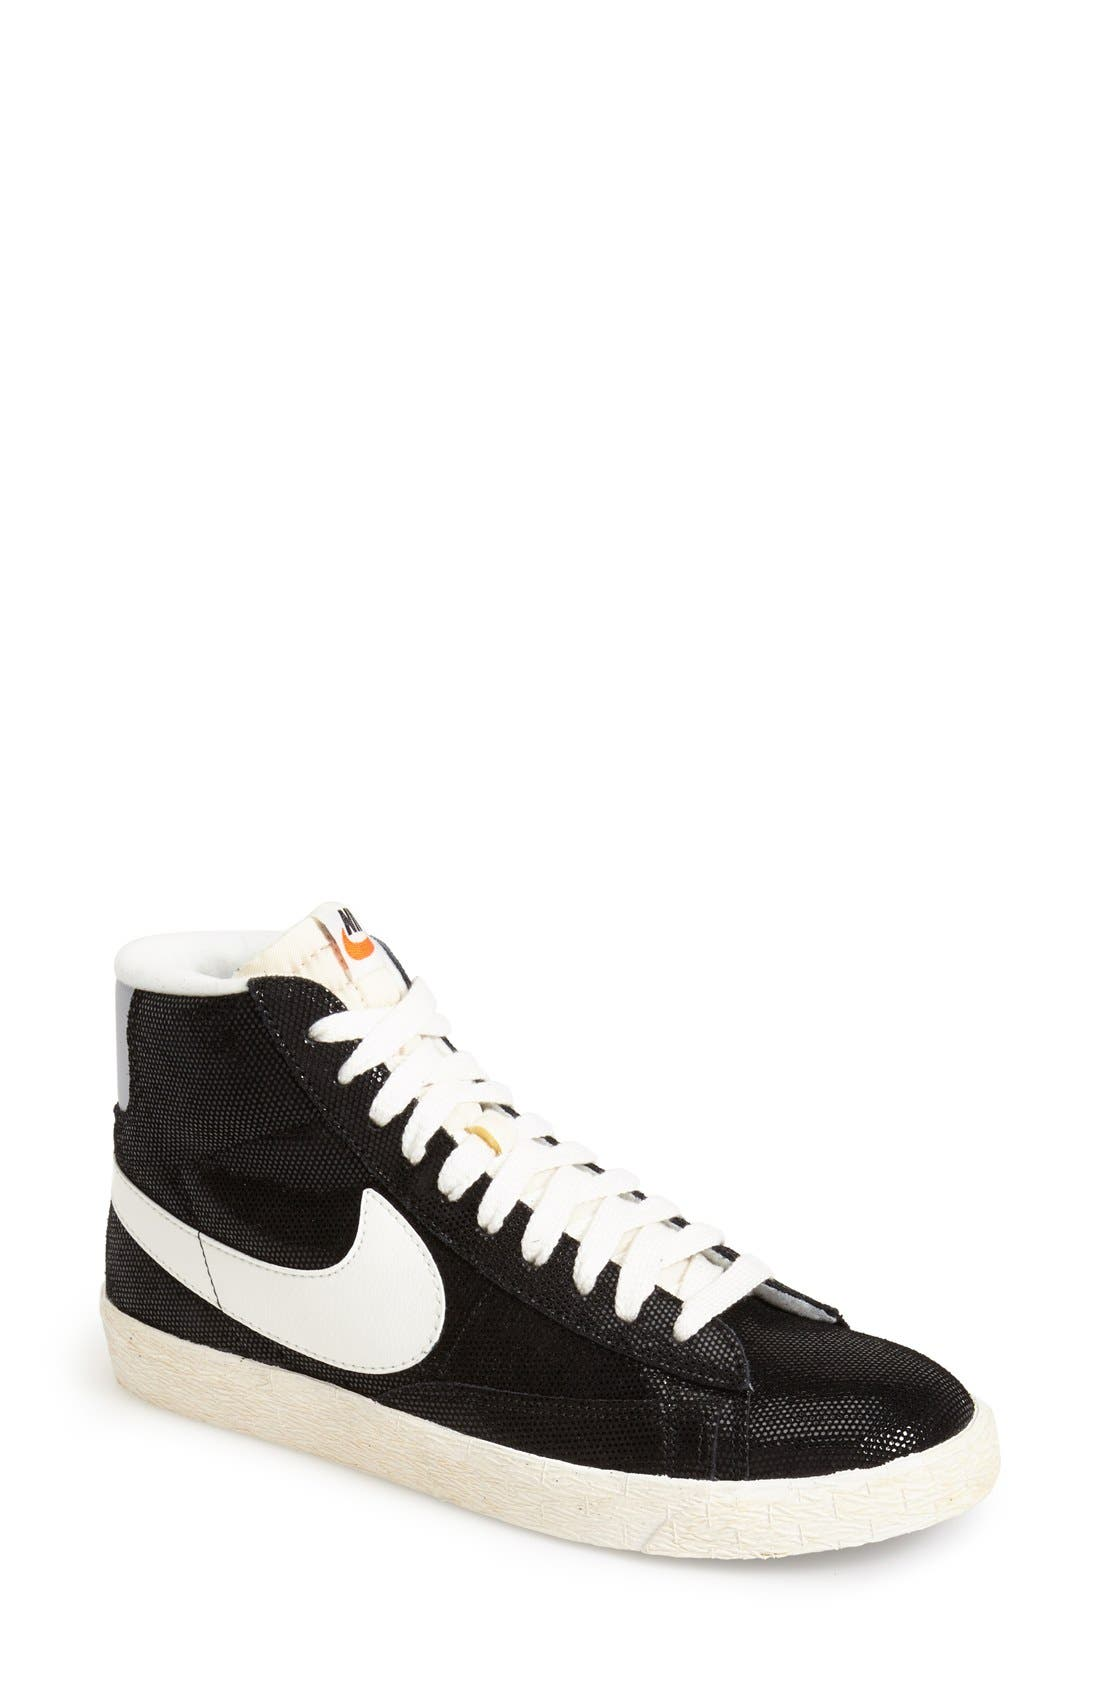 NIKE, 'Blazer' Vintage High Top Basketball Sneaker, Main thumbnail 1, color, 009